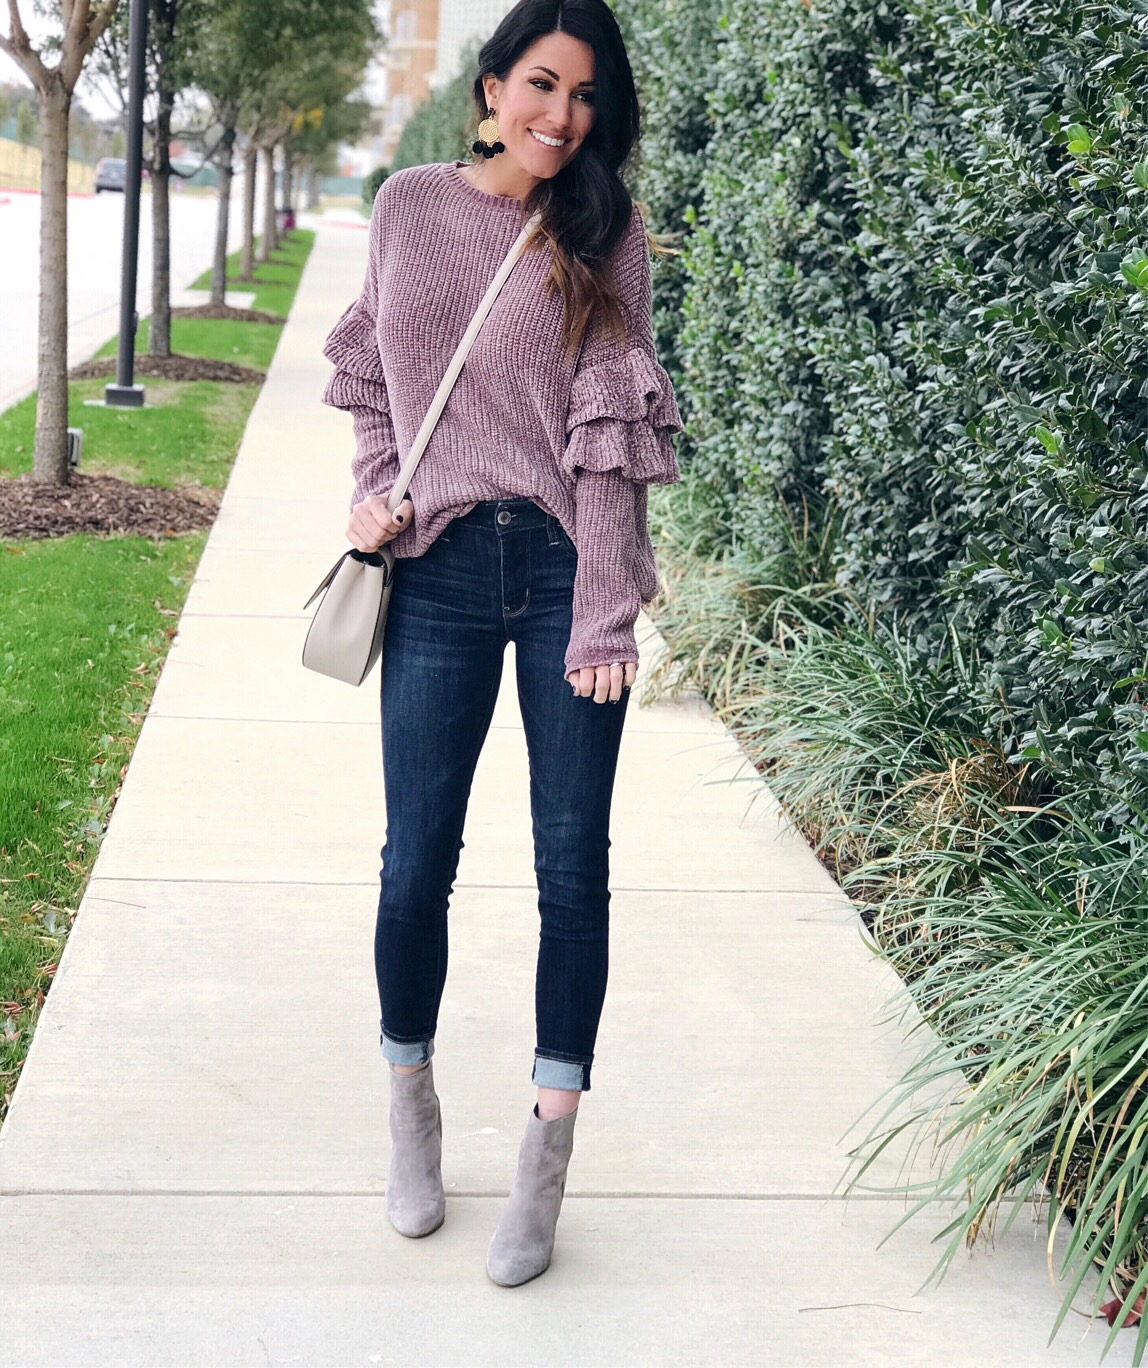 Fall fashion ,dark skinny jeans and sweater